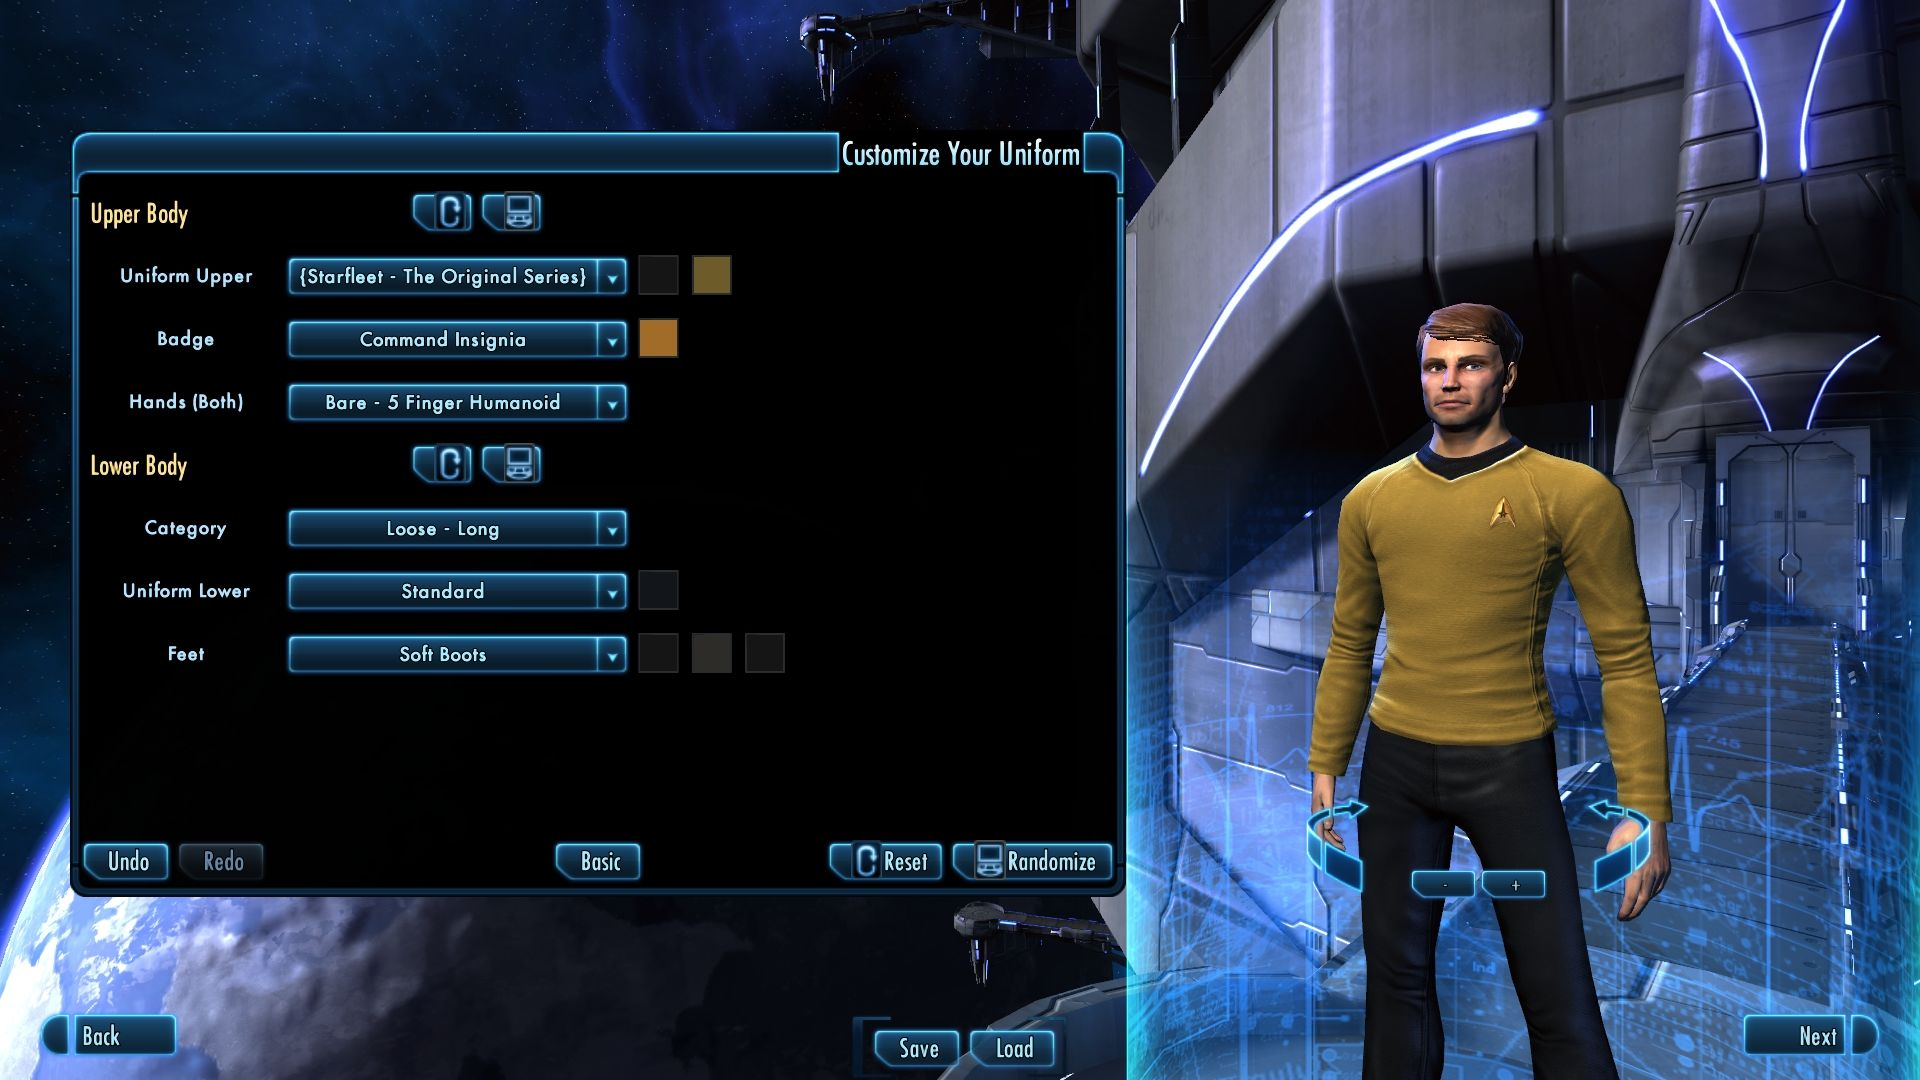 Star Trek Online (Digital Deluxe Edition) Windows Male human character with TOS uniform.